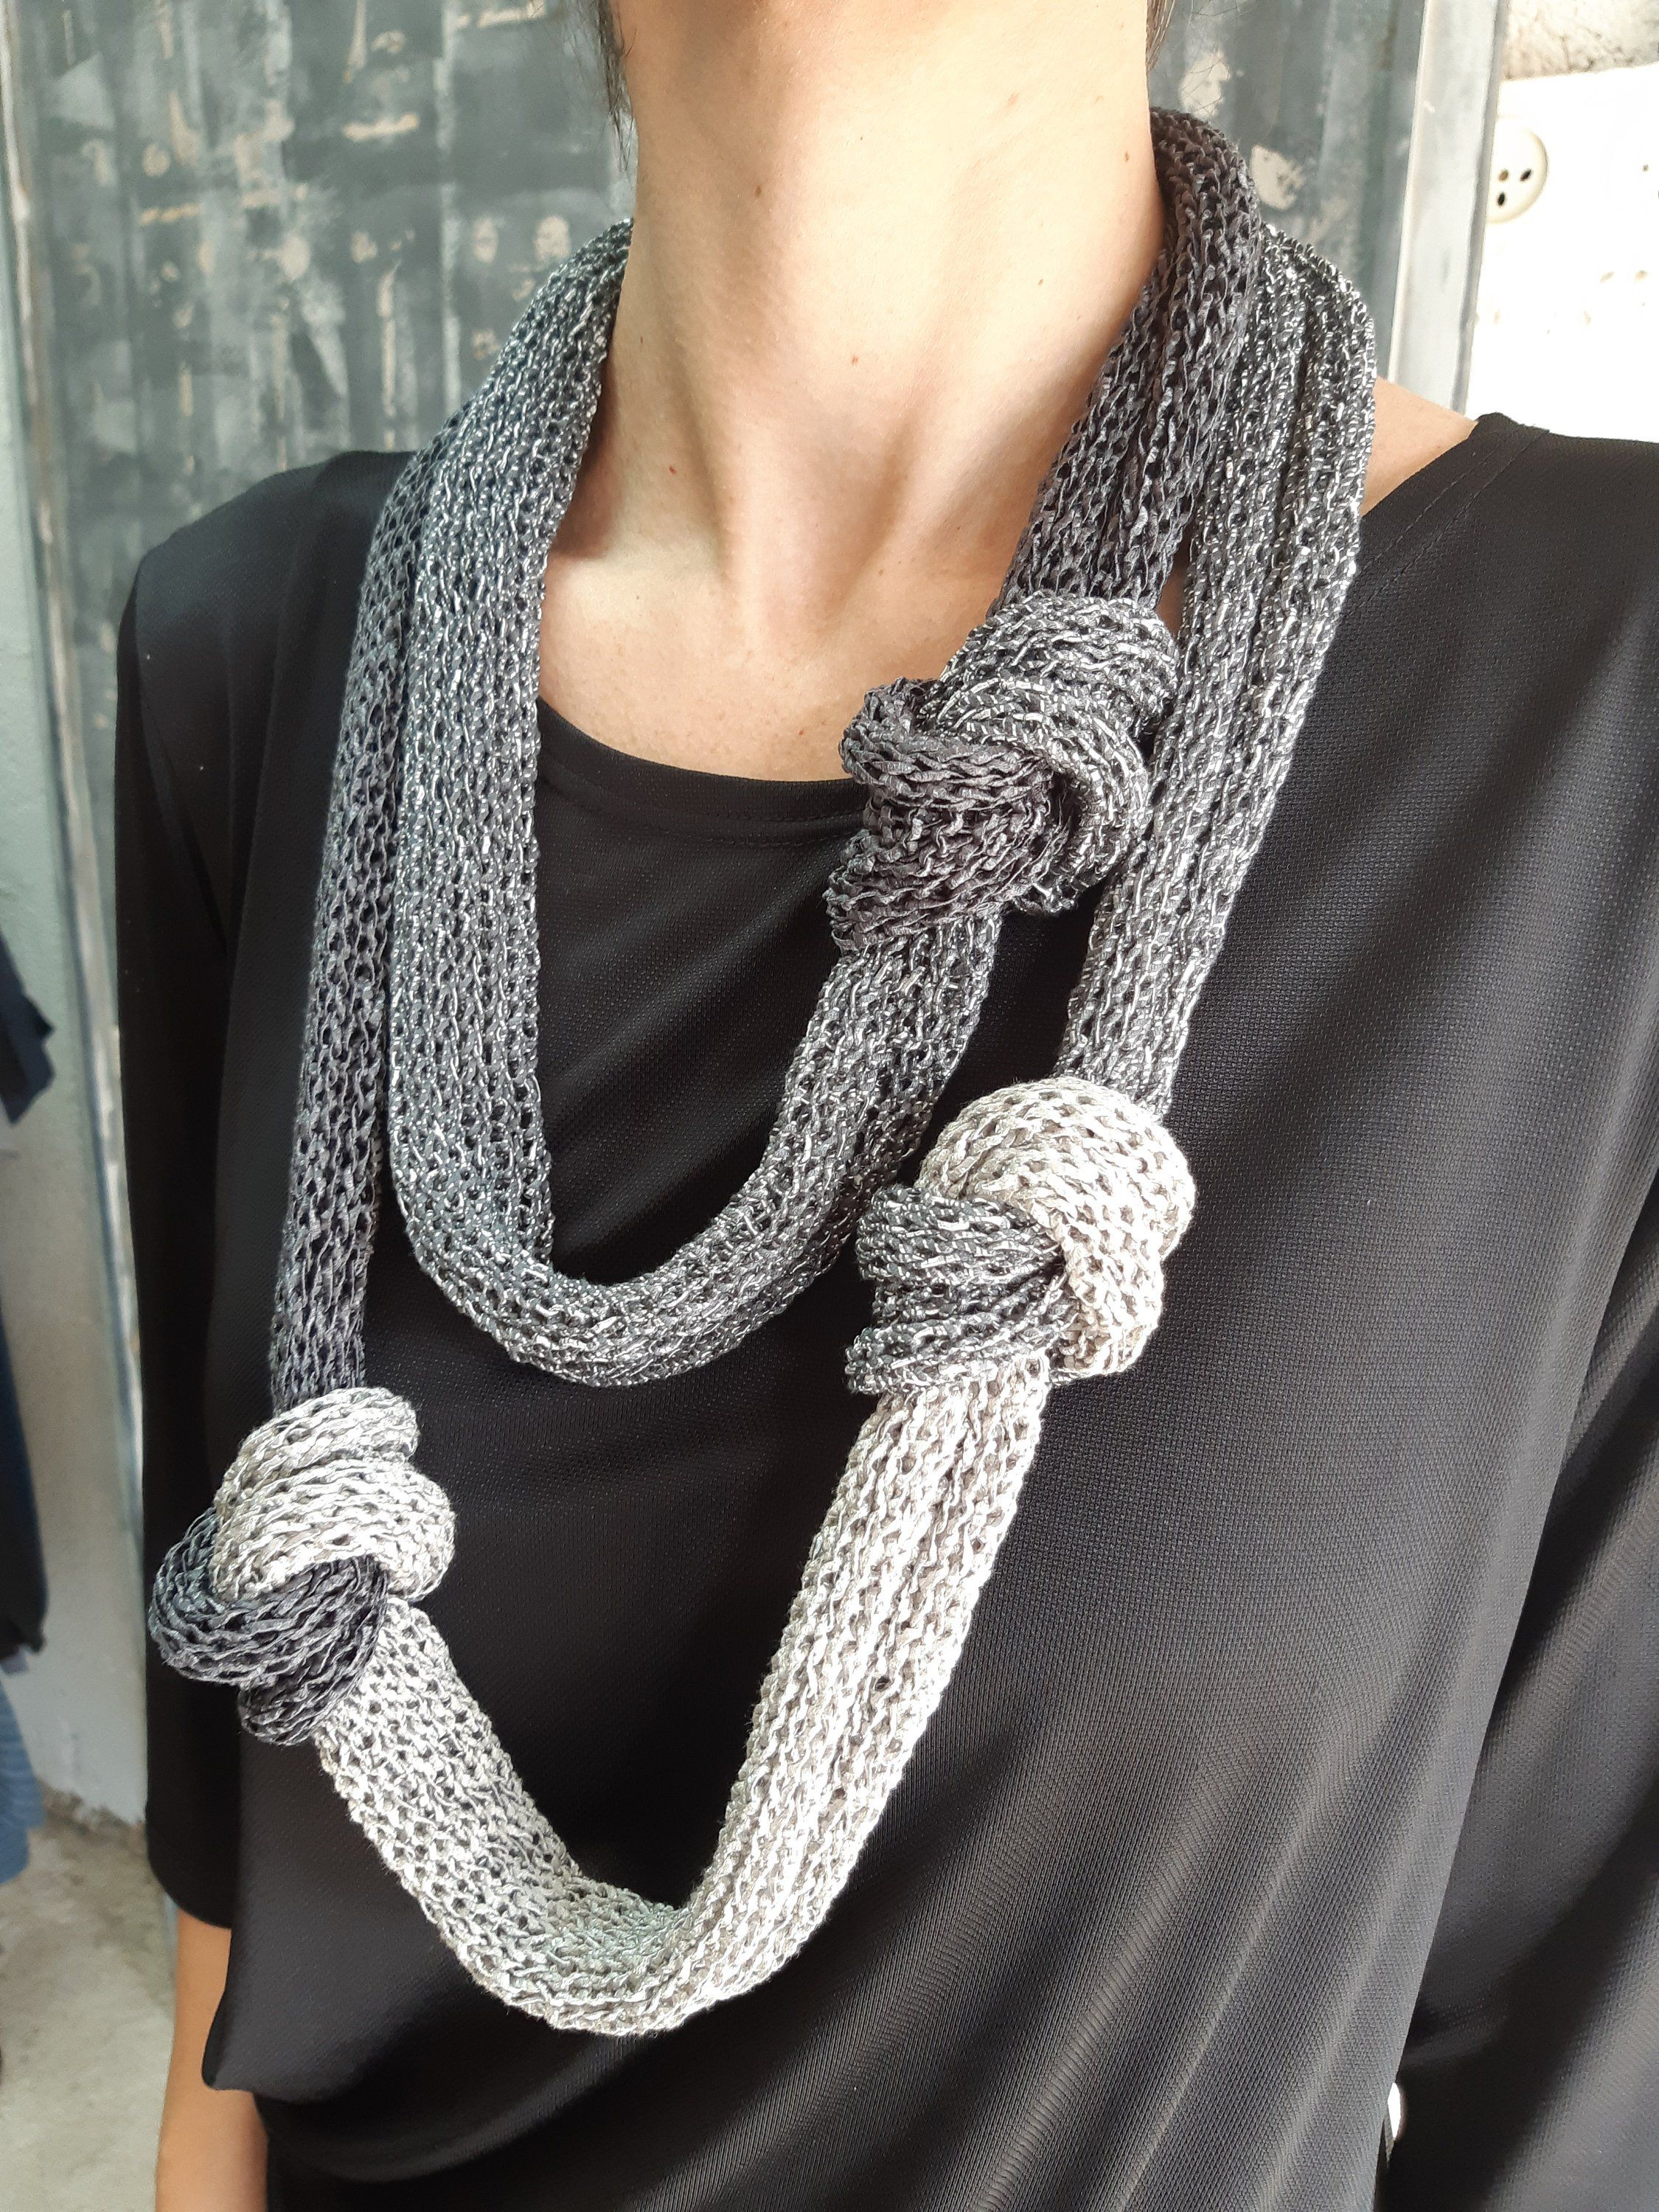 T shirt necklace,black and white color,Fabric necklace,Bib necklace textile necklace knot necklace